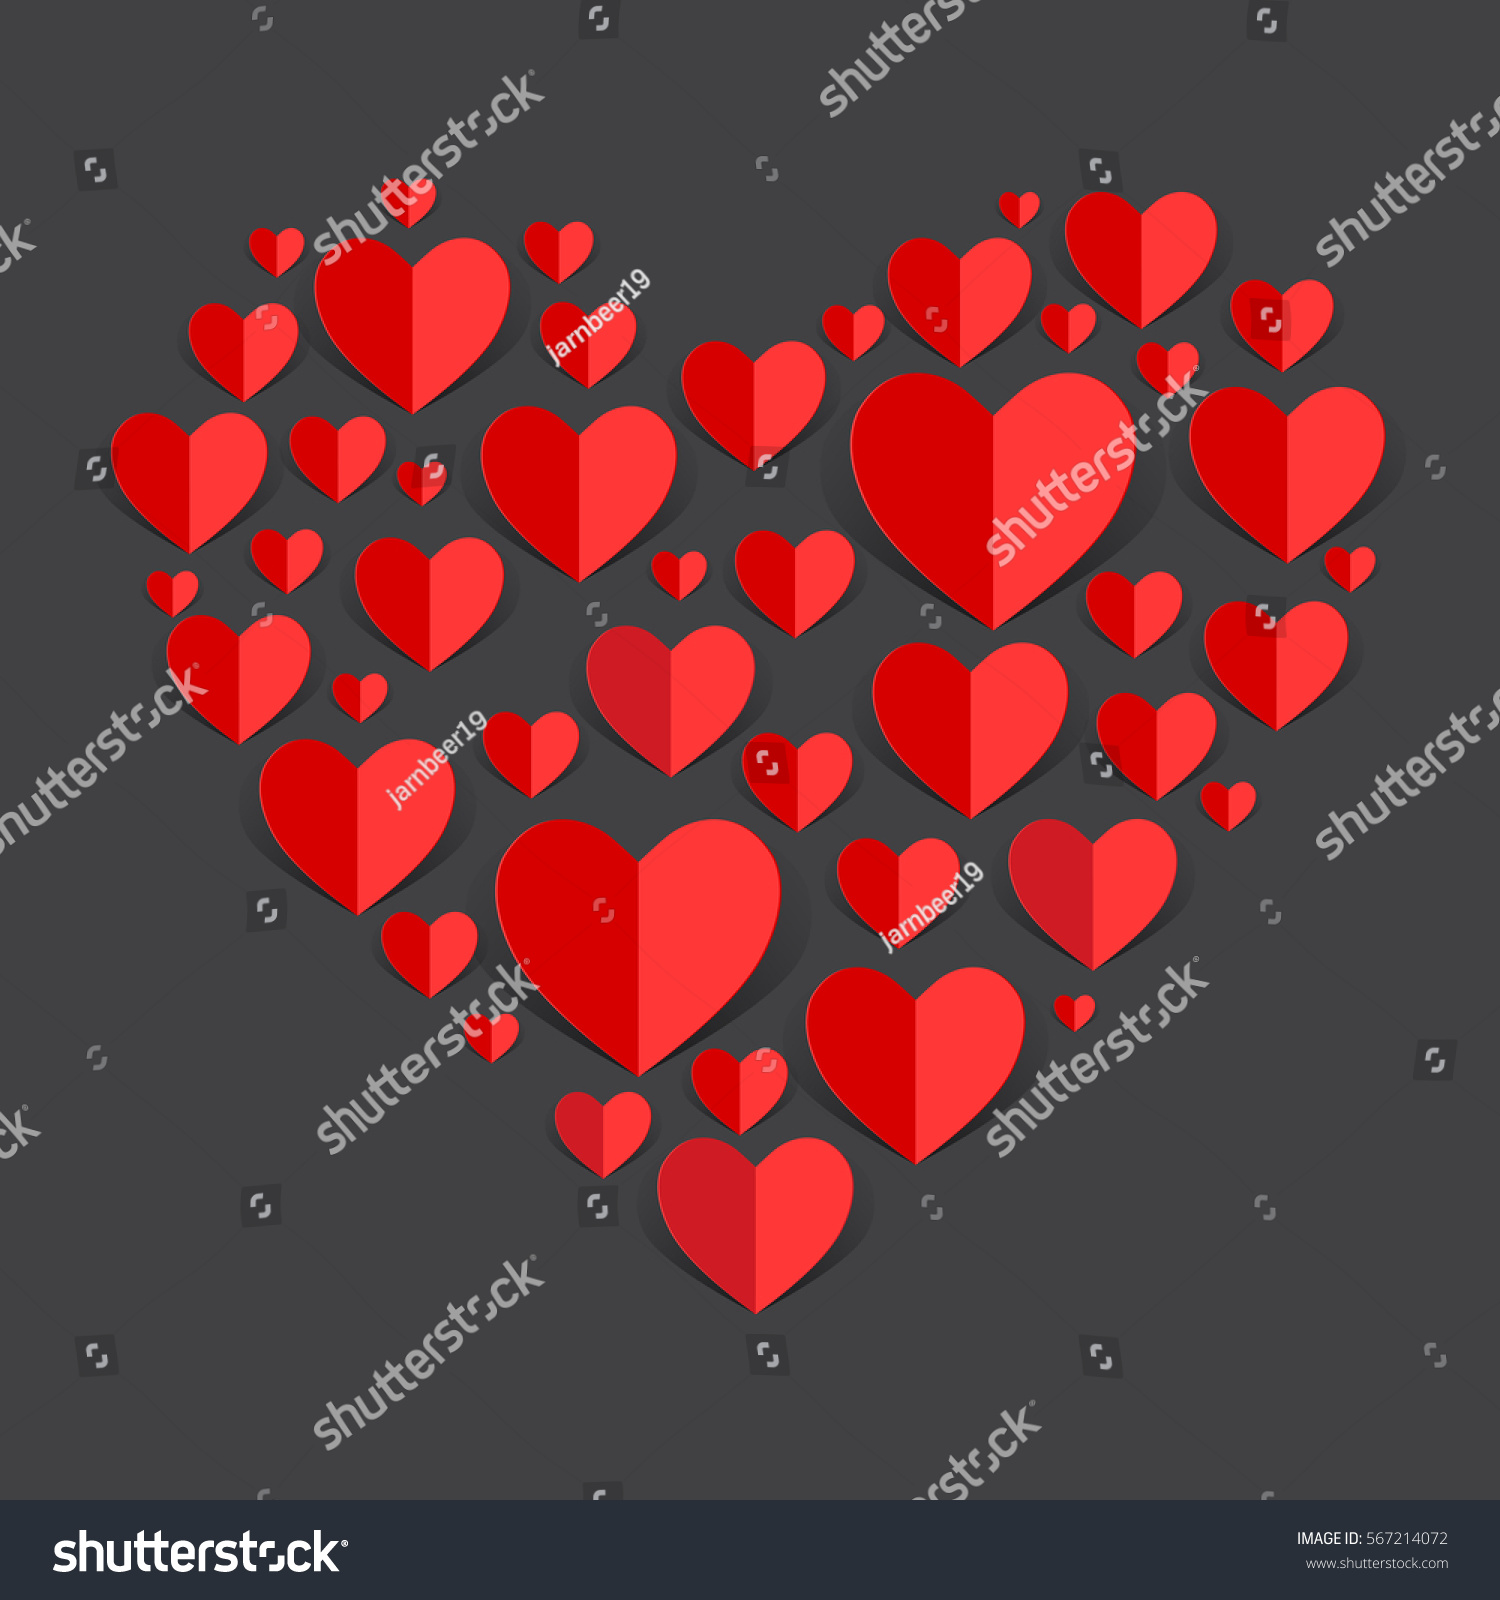 love hearts valentines day background paper stock vector (royalty